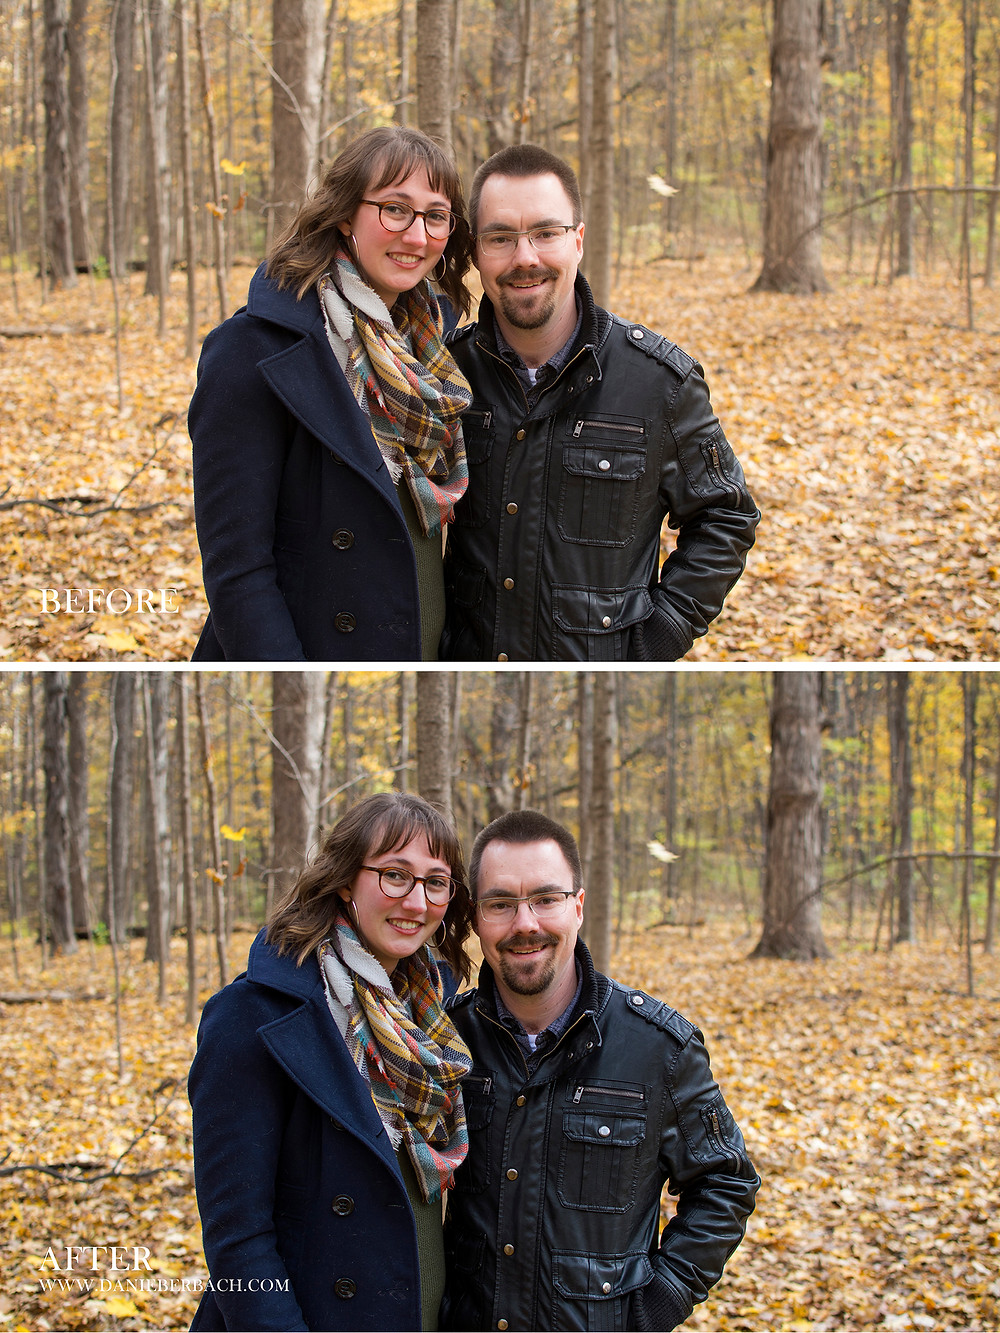 Before and After: Autumn Portrait in the Woods